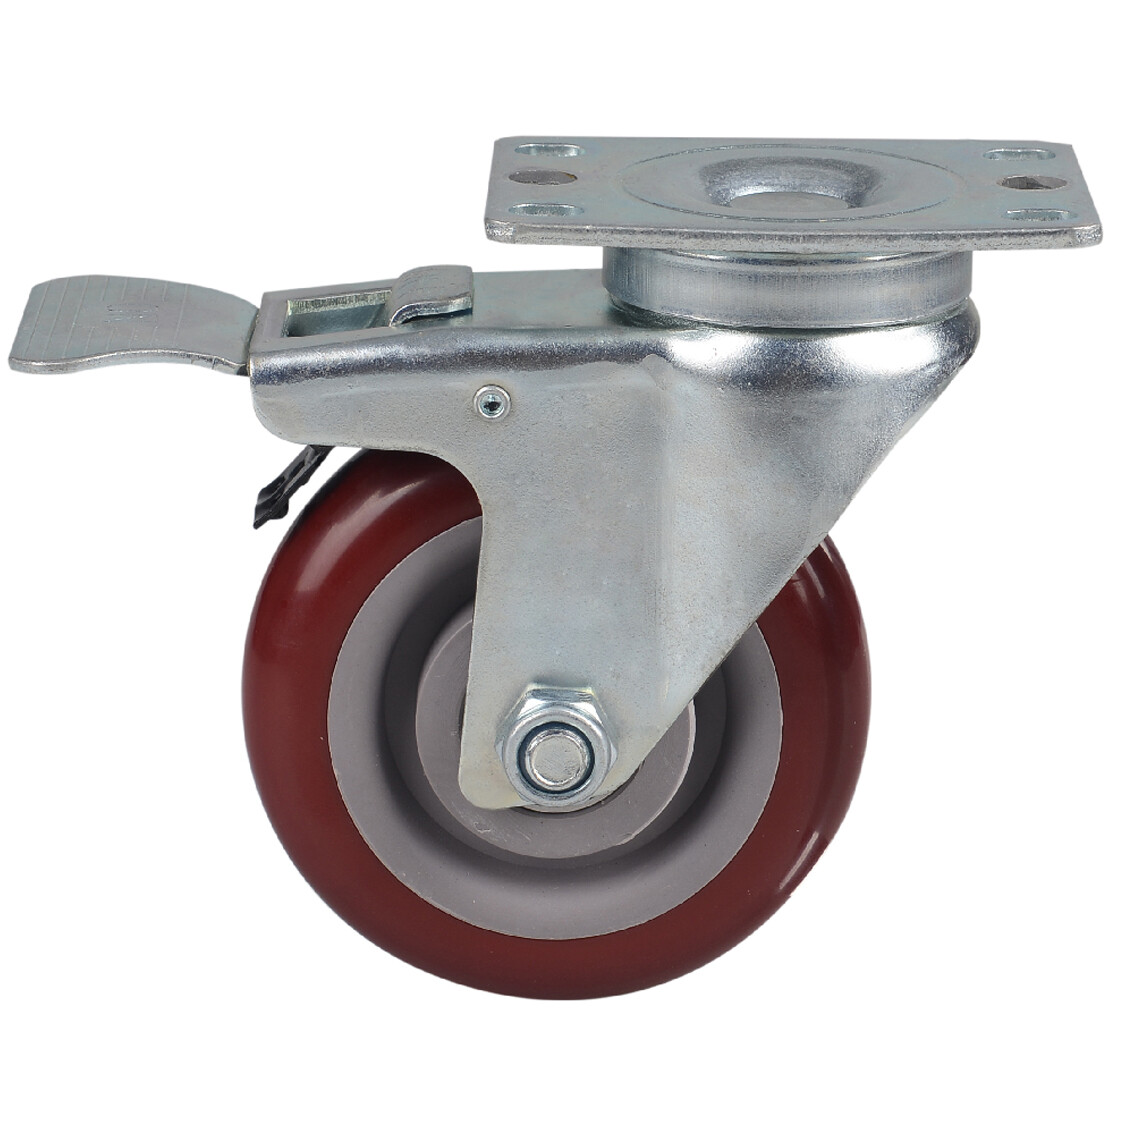 Plate type swivel PVC caster with brake, red